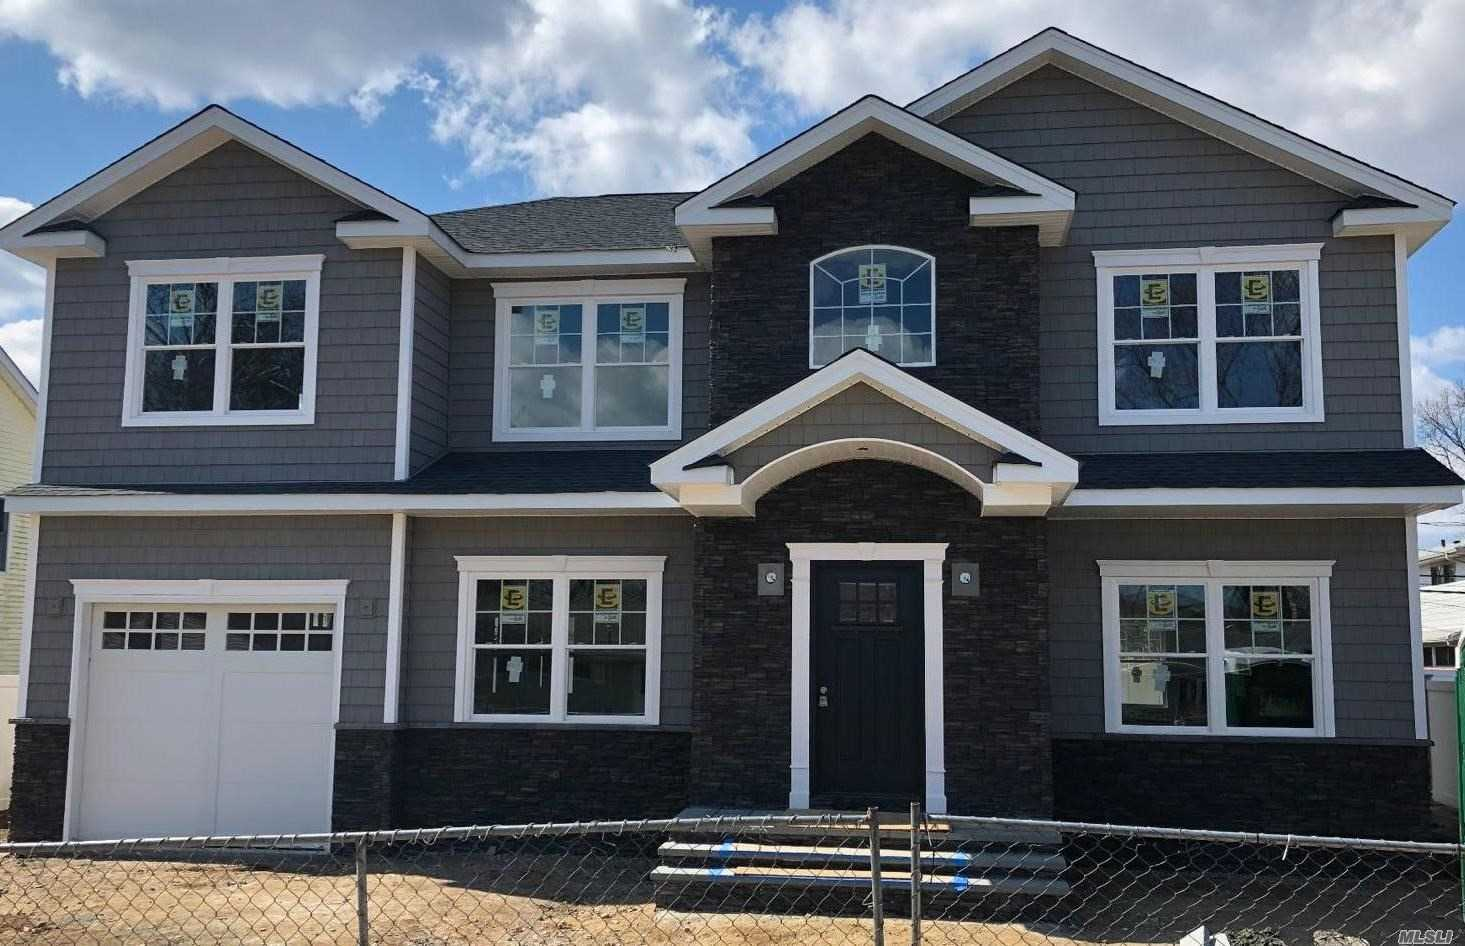 New Construction. Syosset Groves. Center Hall Colonial W/ 5 Bedrooms & 3 Full Baths. Quality Craftsmanship Throughout! Vaulted Entry, Custom Kitchen W/Granite Ci & Ss Appliances, Fdr W/Tray Ceiling, Fr W/Gas Fpl, Mstr Suite W/Bth & 2 Walk In Closets. 9' Ceiling On 1st Flr, 8' On 2nd & Bsmt. Gas Combi Heating Unit/2 Zone Hydronic Ha Heat/Cac, 200 Amp Elec., Prewired Cable/Cat 5E, Crown Moldings, Hi Hat Lighting, Alarm, Igs & More.